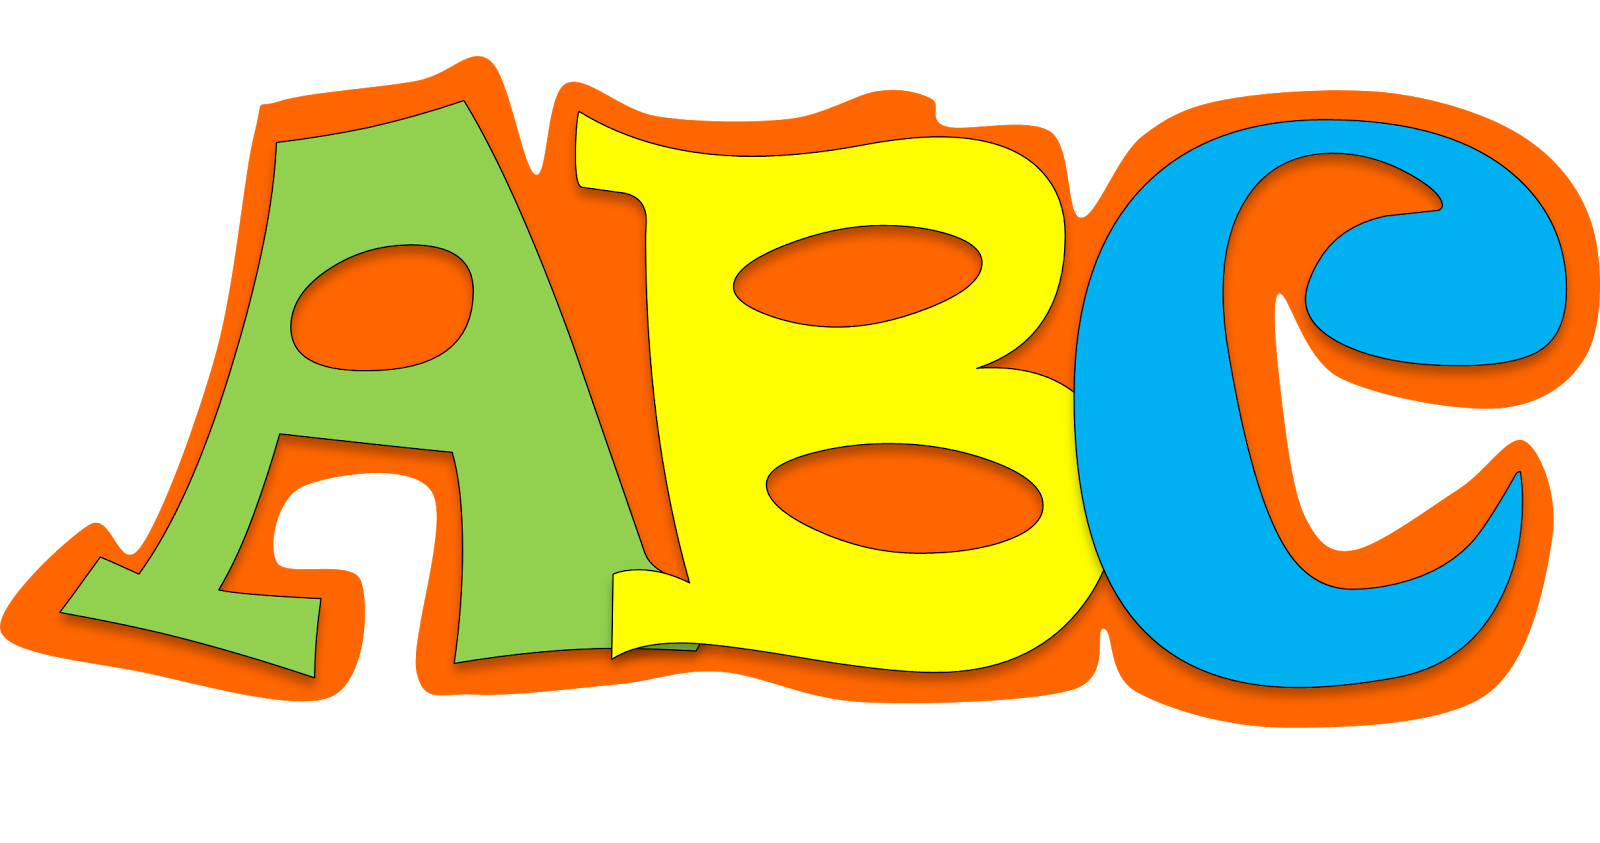 Free ABC Cliparts, Download Free Clip Art, Free Clip Art on.